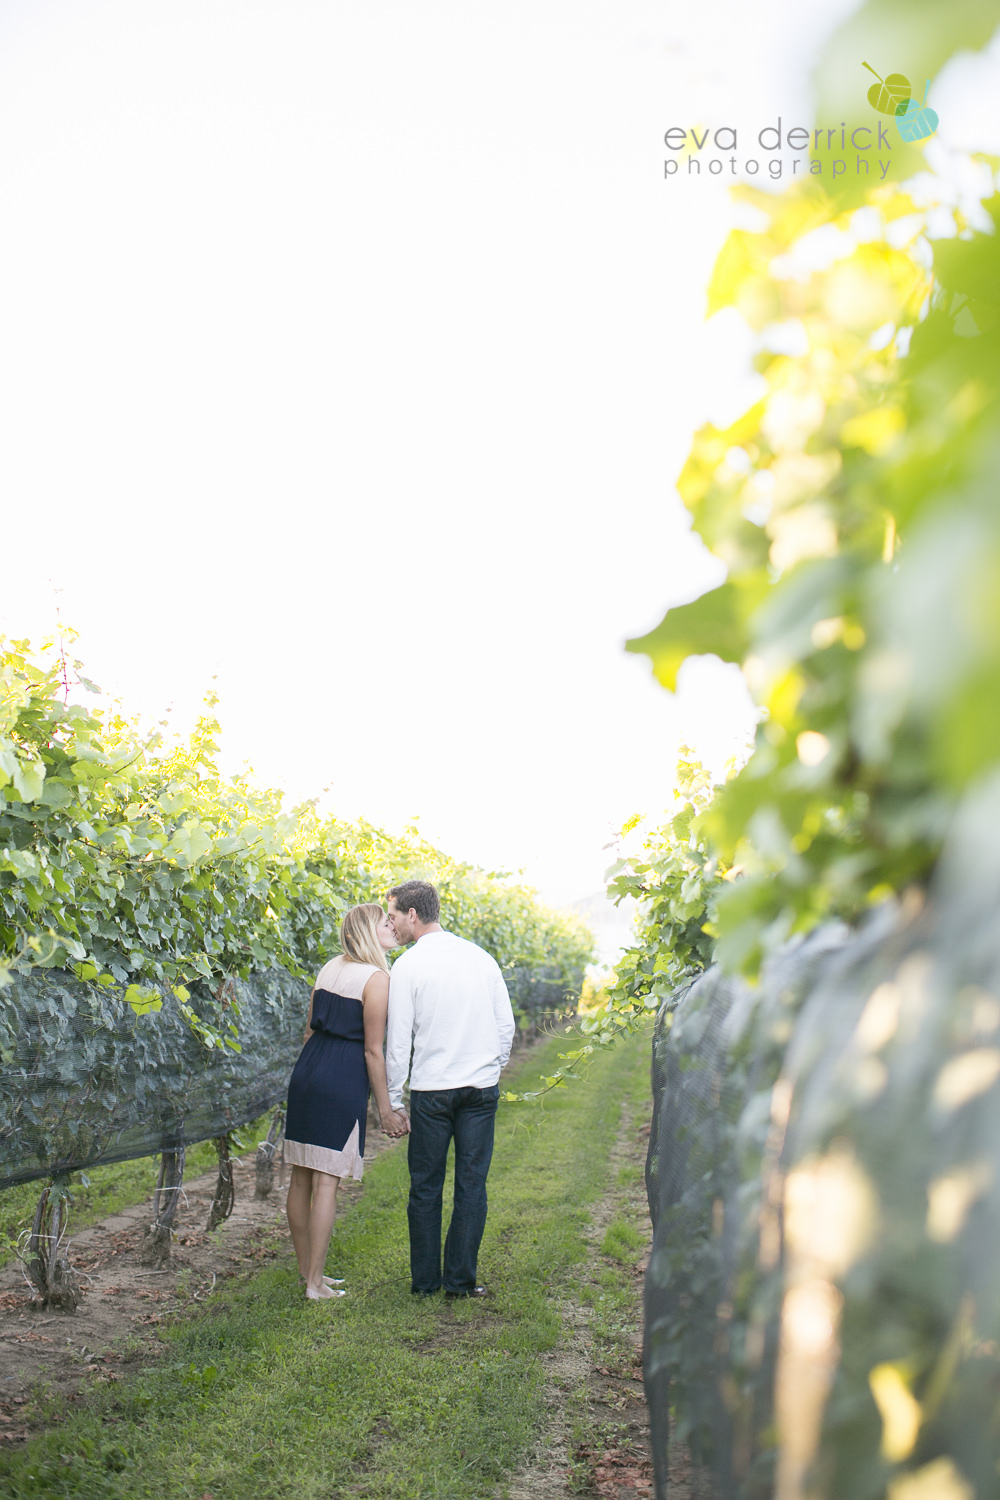 Niagara-Engagement-Photographer-Engagement-Session-Vineyard-Farm-Fields-Beth-Dan-photography-by-Eva-Derrick-Photography-009.JPG